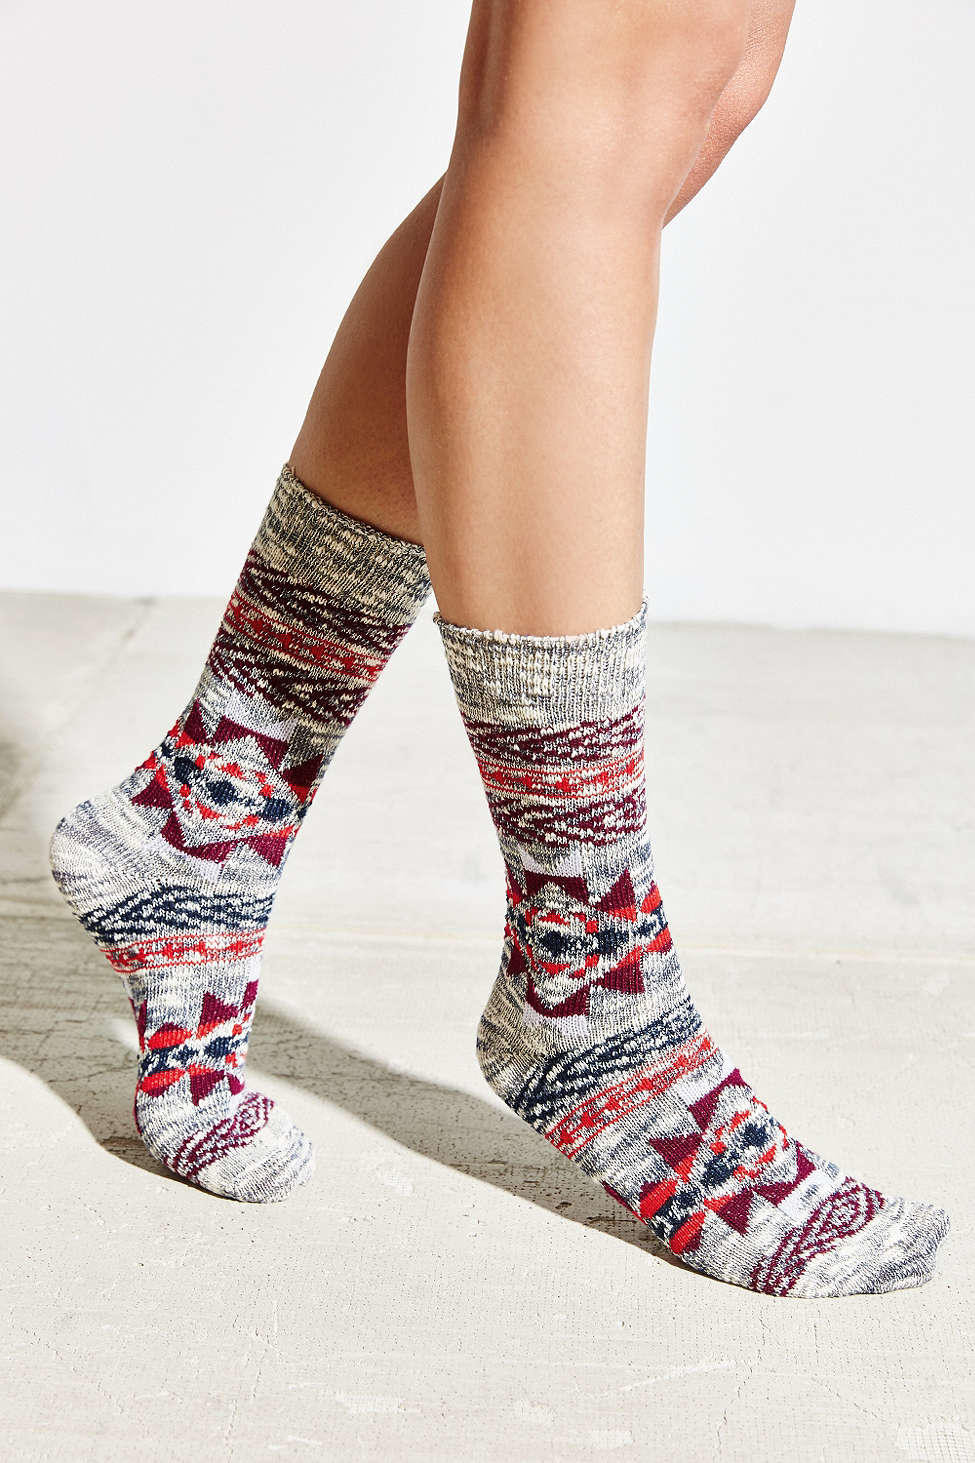 Patterned socks Luxury Patterned Slouchy Crew sock Urban From Urban Outfitters Of Superb 48 Images Patterned socks